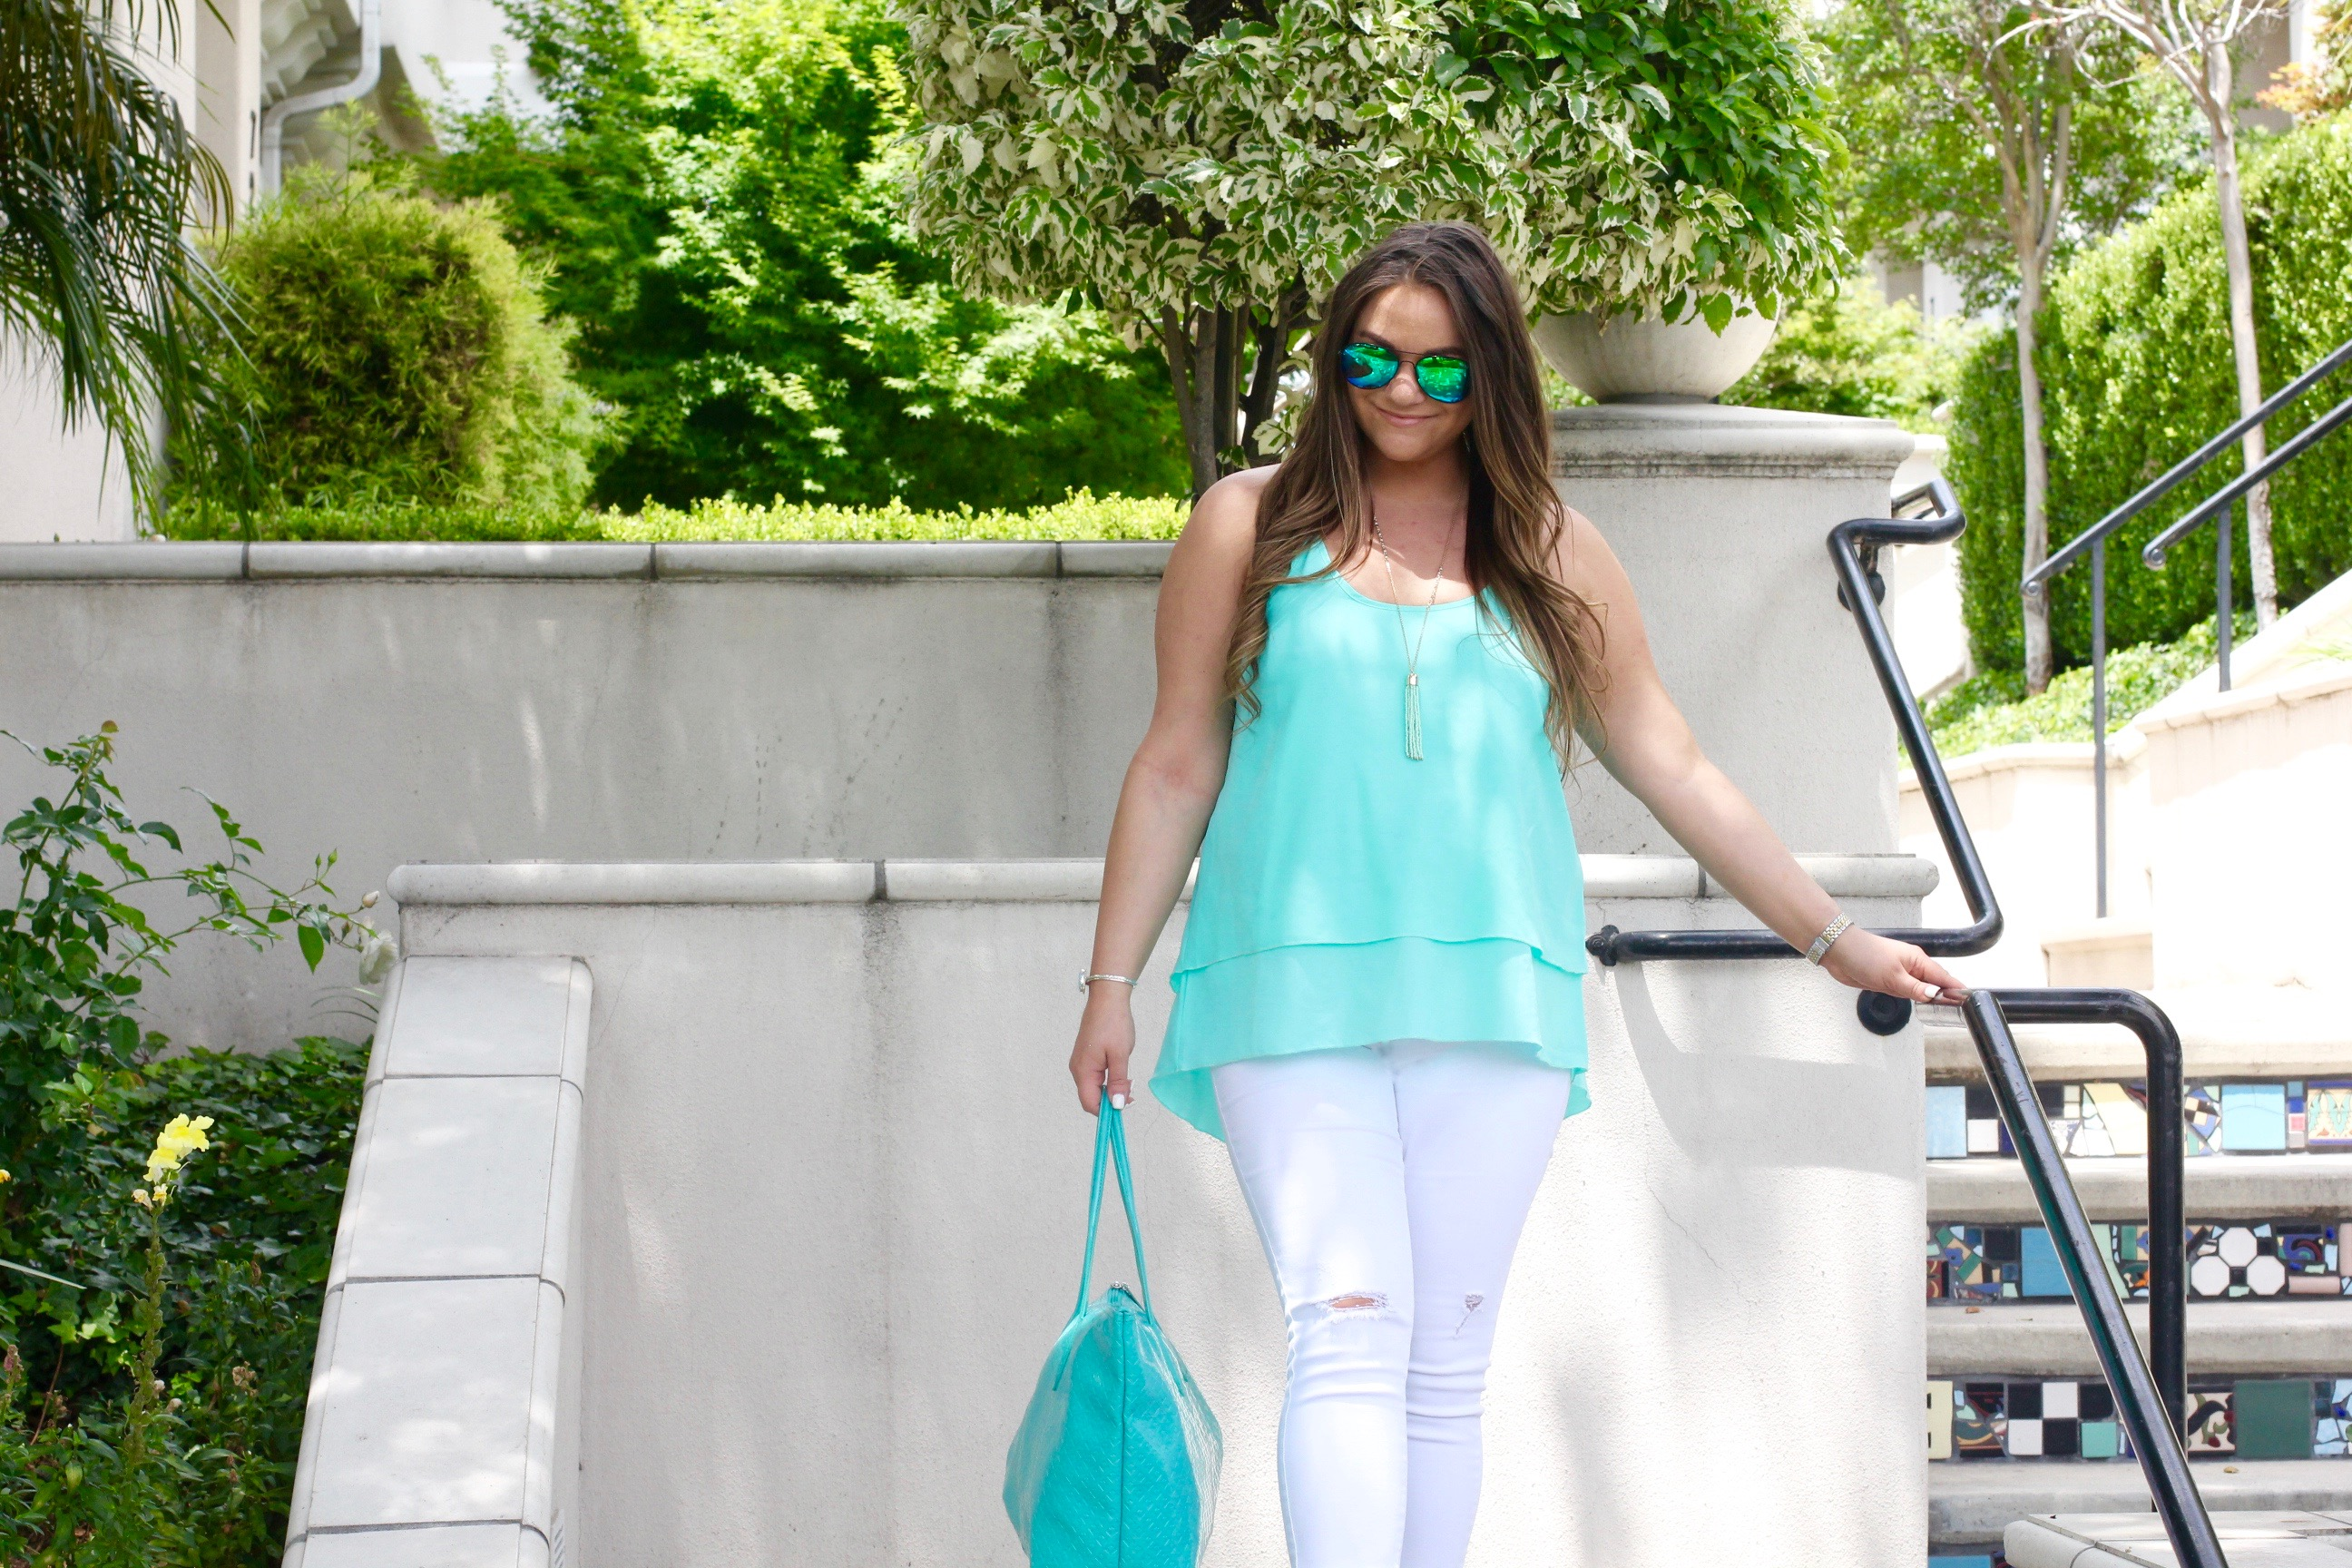 missyonmadison, fashion blogger, fashion blog, style blogger, style blog, turquoise camisole, all for color, turq cami, old navy, white skinny jeans, old navy white rockstar jeans, vince camuto, vince camuto gladiator heeled sandals, heeled sandals, nectar sunglasses, nectar aviators, green aviators, hair style, summer trends, summer hair styles, summer style, turq cami,